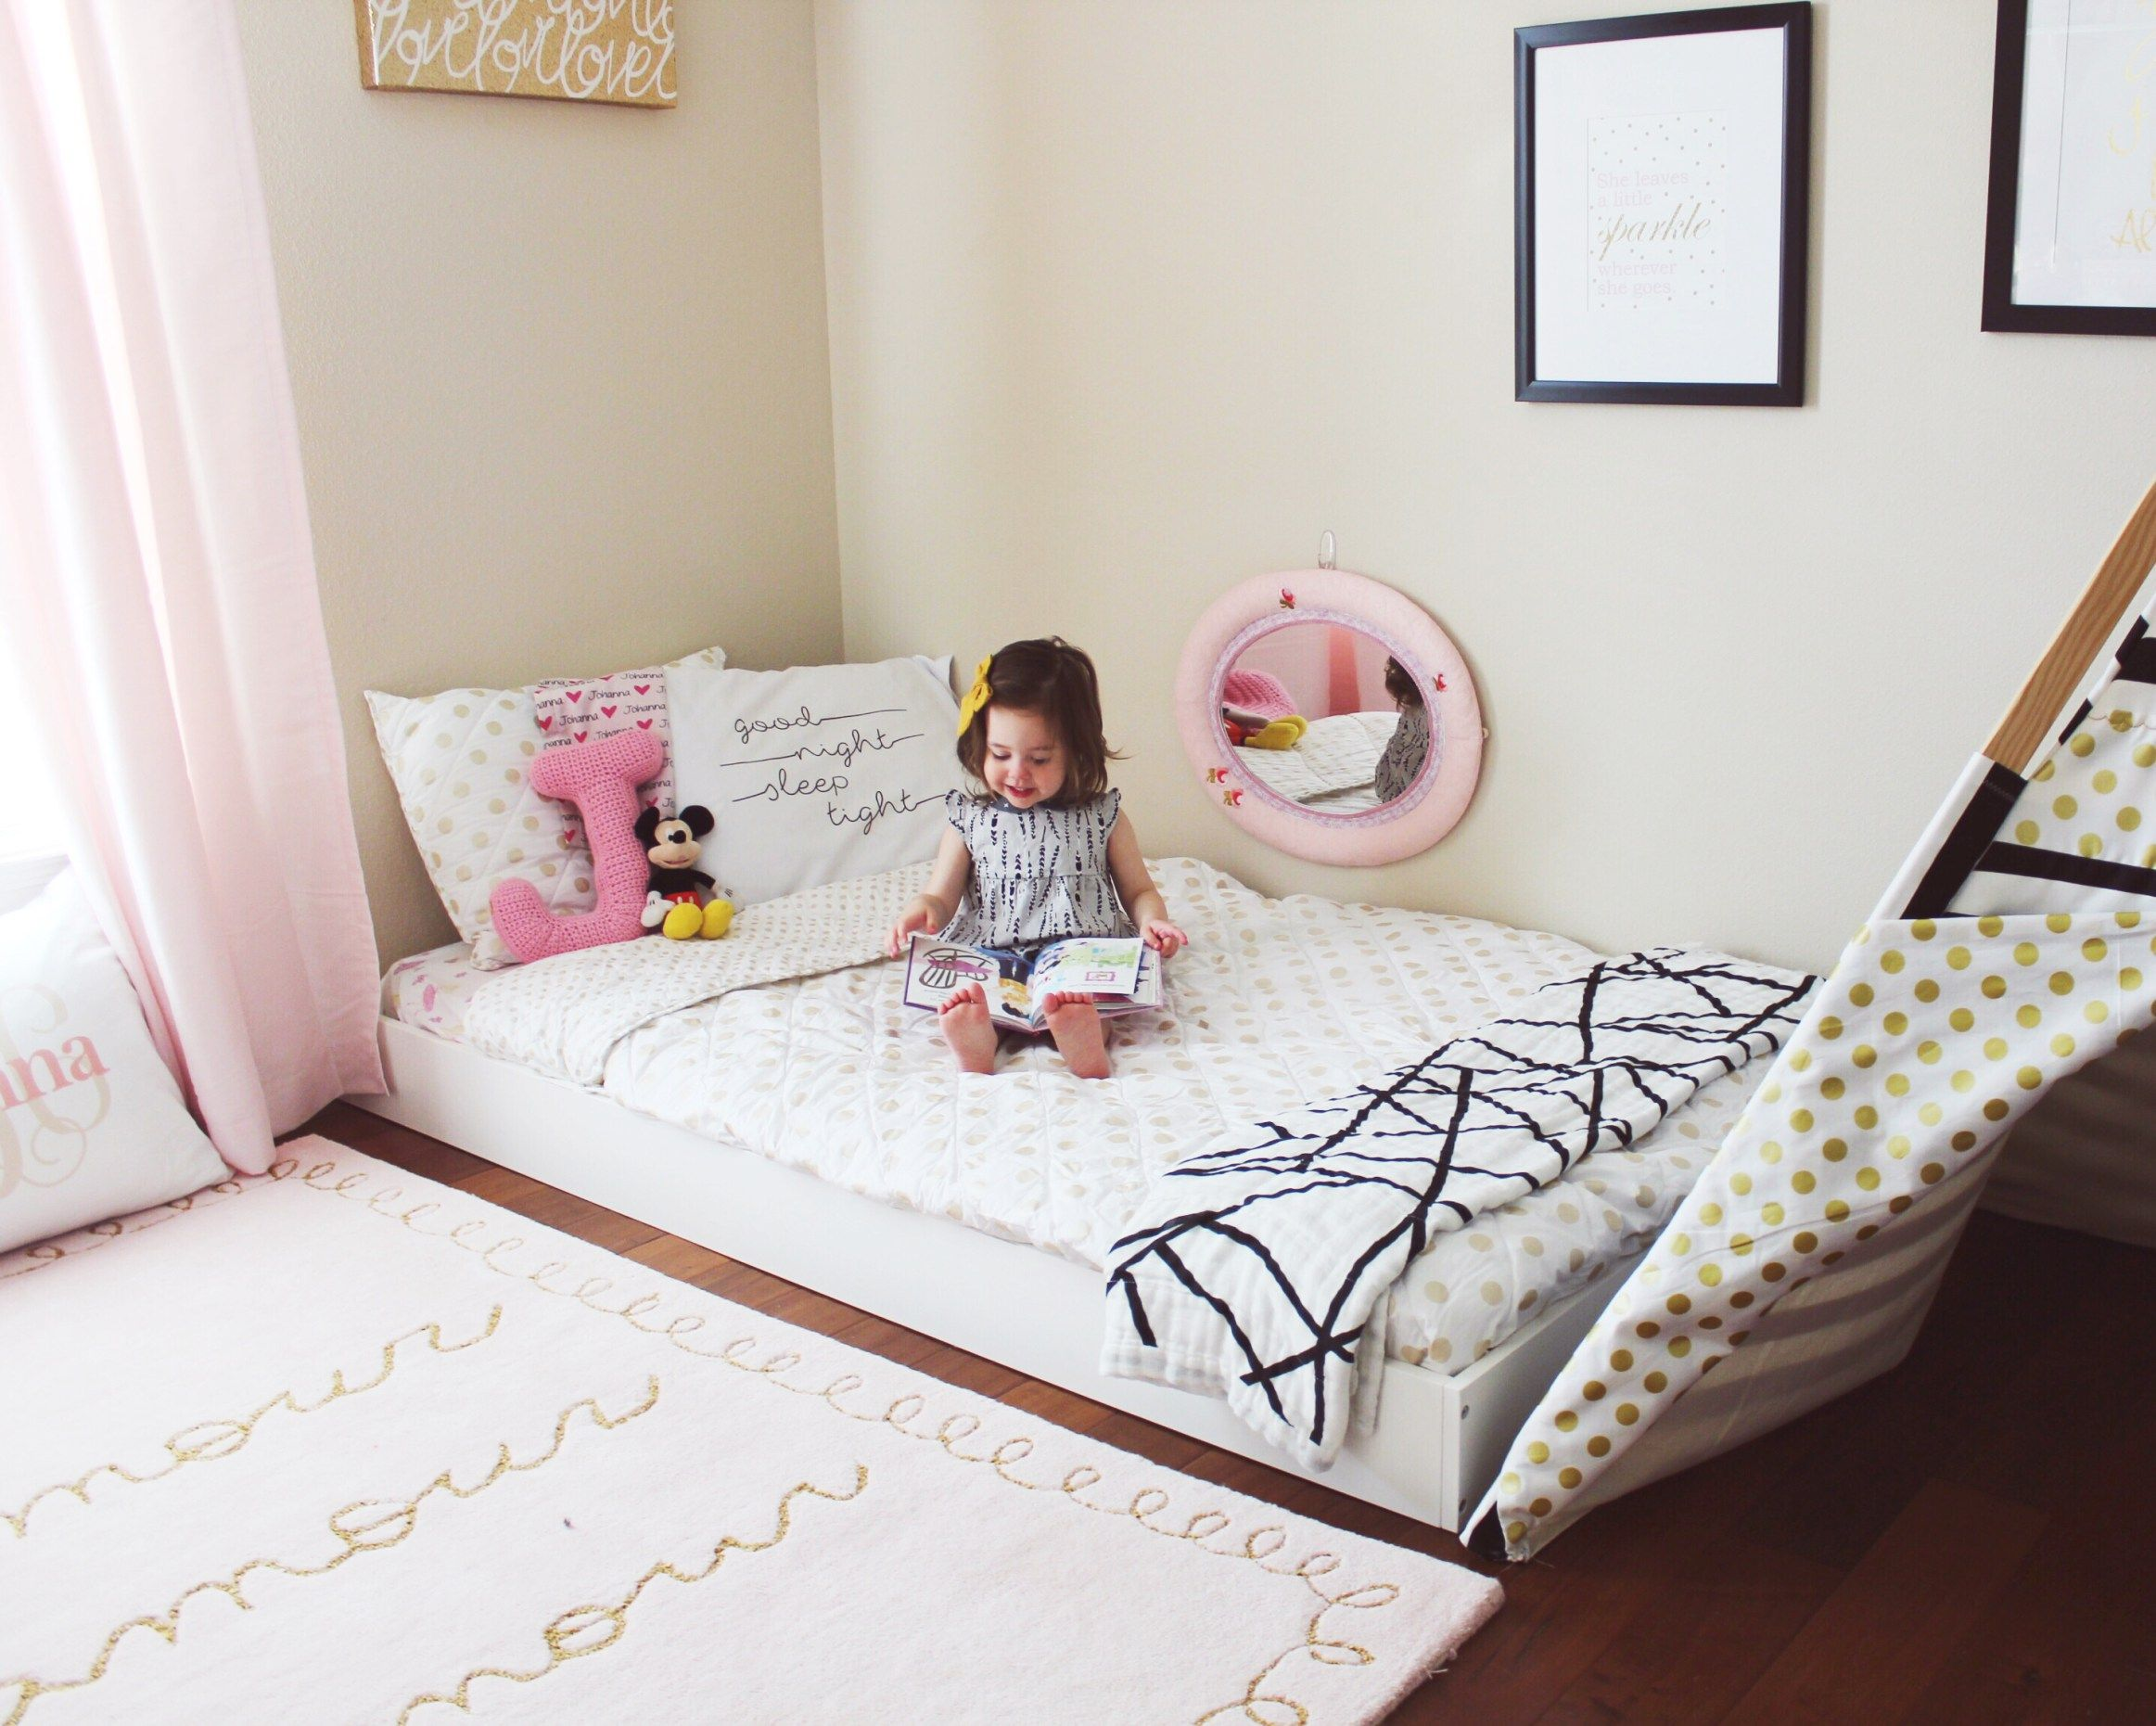 Johanna S Updated Montessori Floor Bed Toddler Room Oh Happy Play Big Kids Room Toddler Floor Bed Kids Room Inspiration